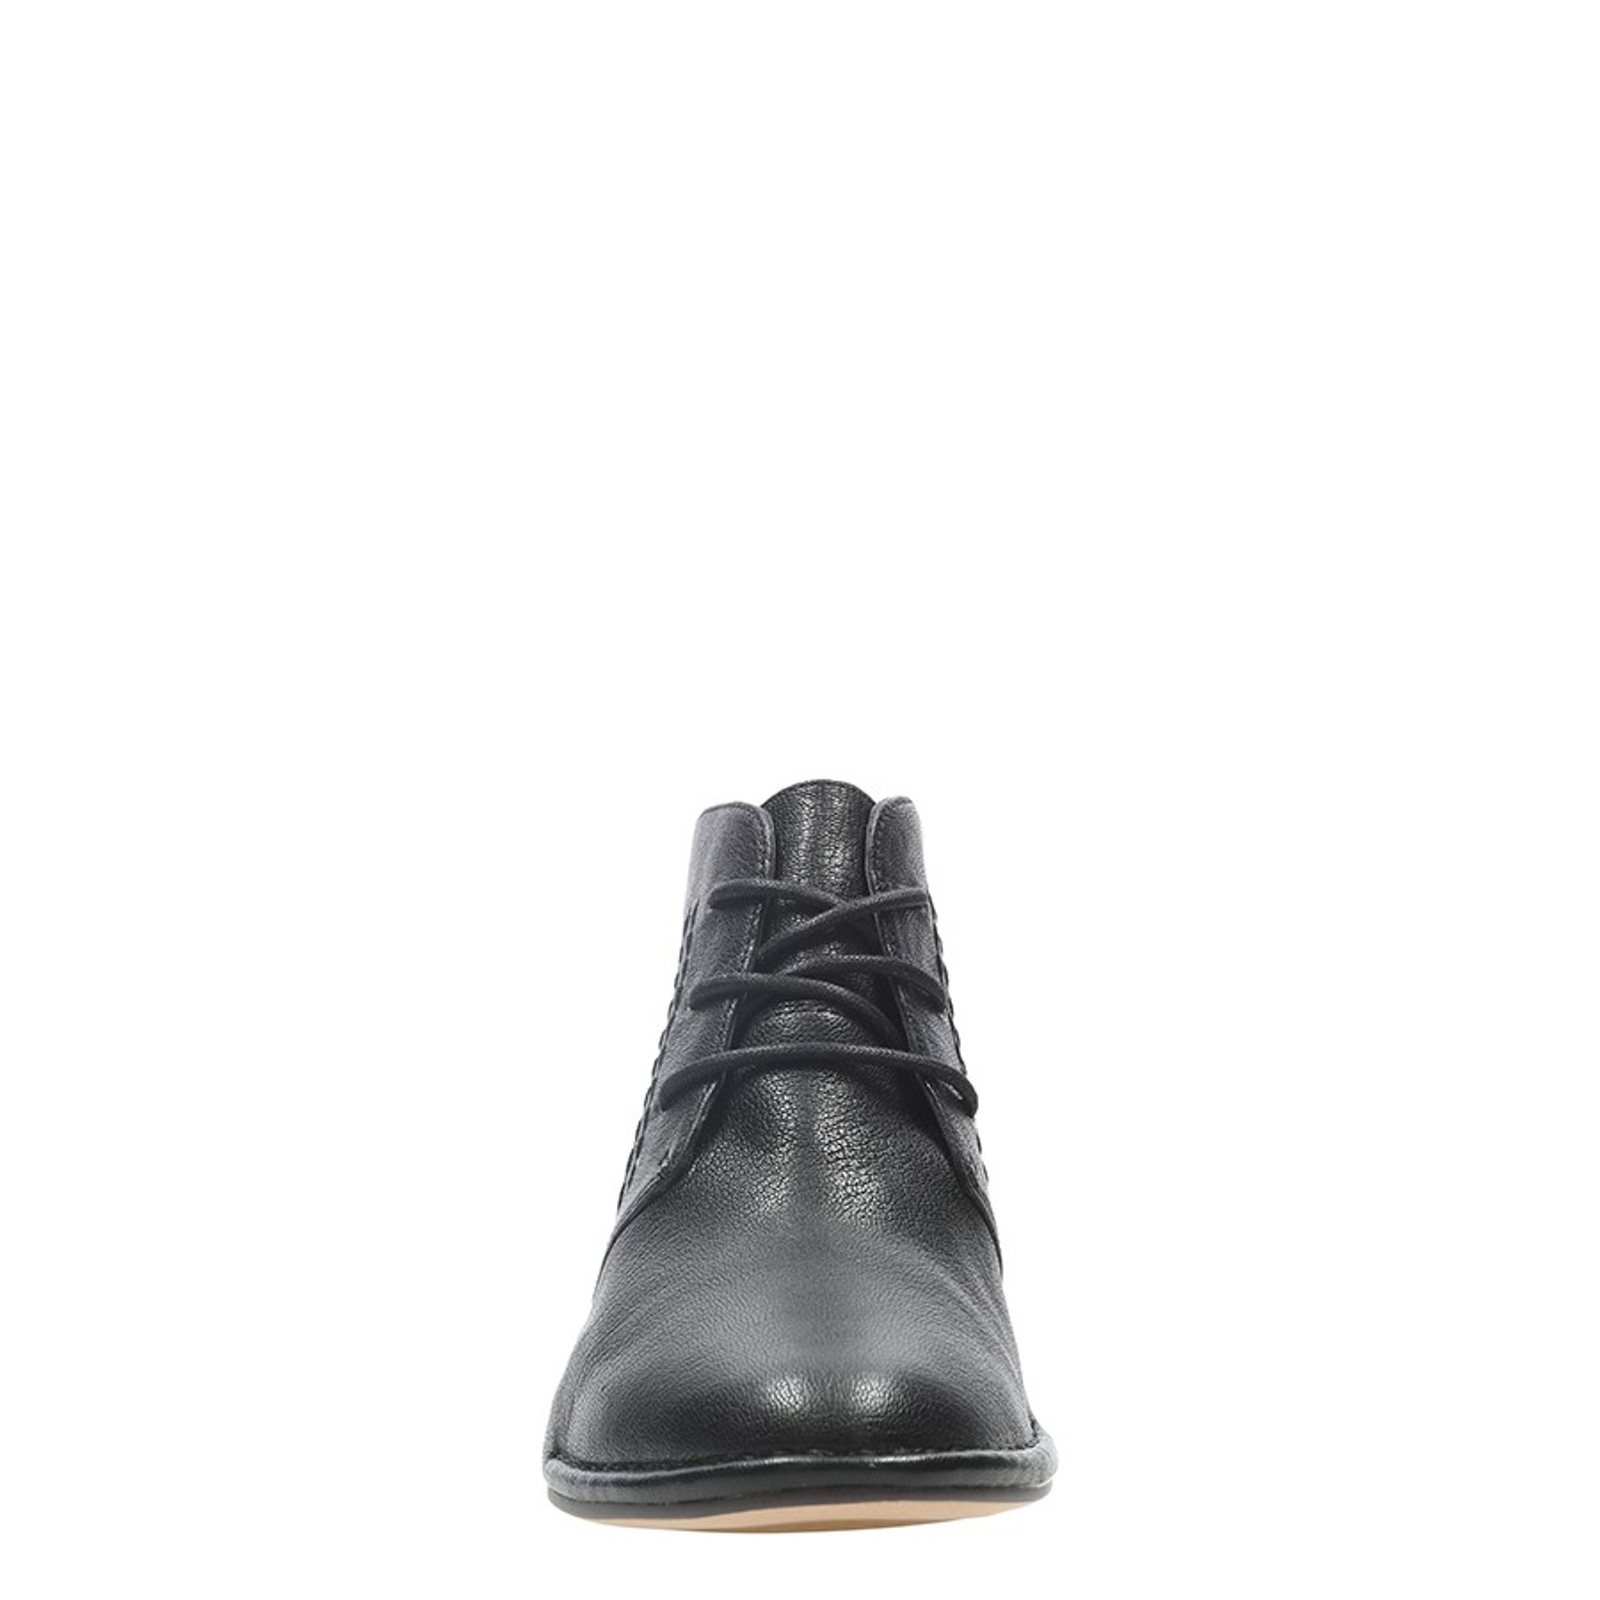 Clarks Womens SPICED CHARM Black Leather